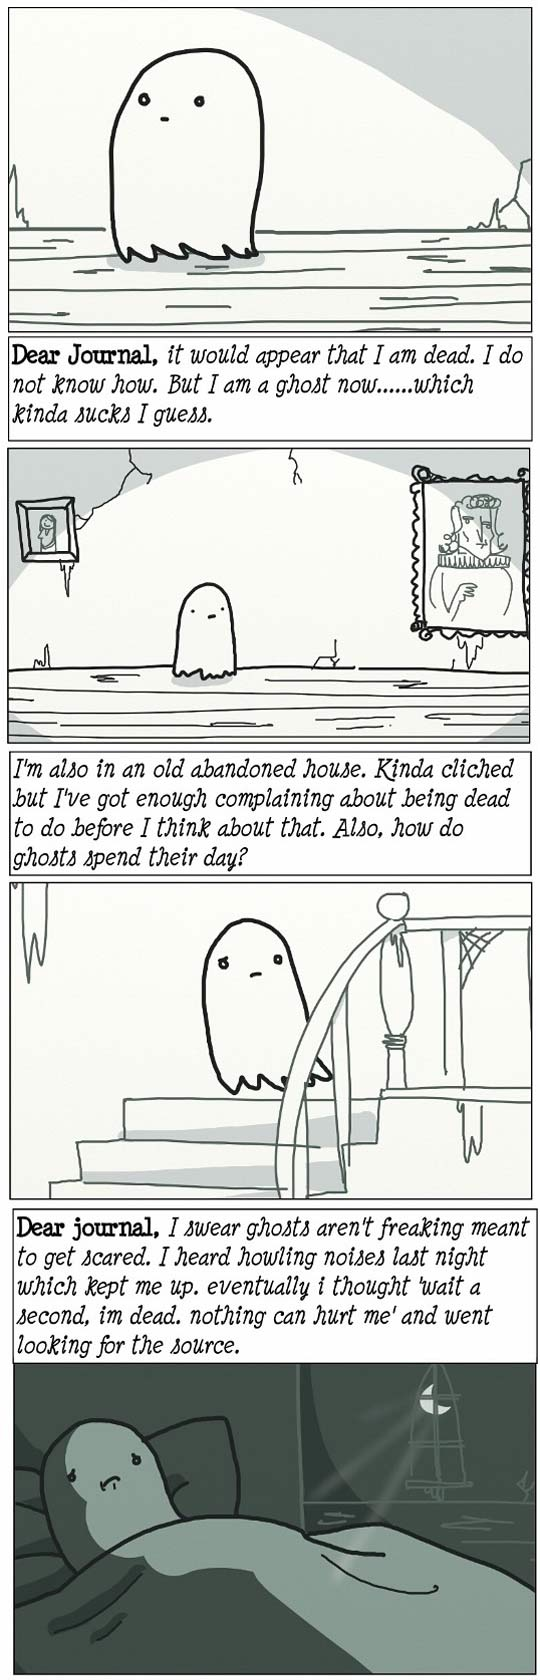 The cutest ghost story ever...